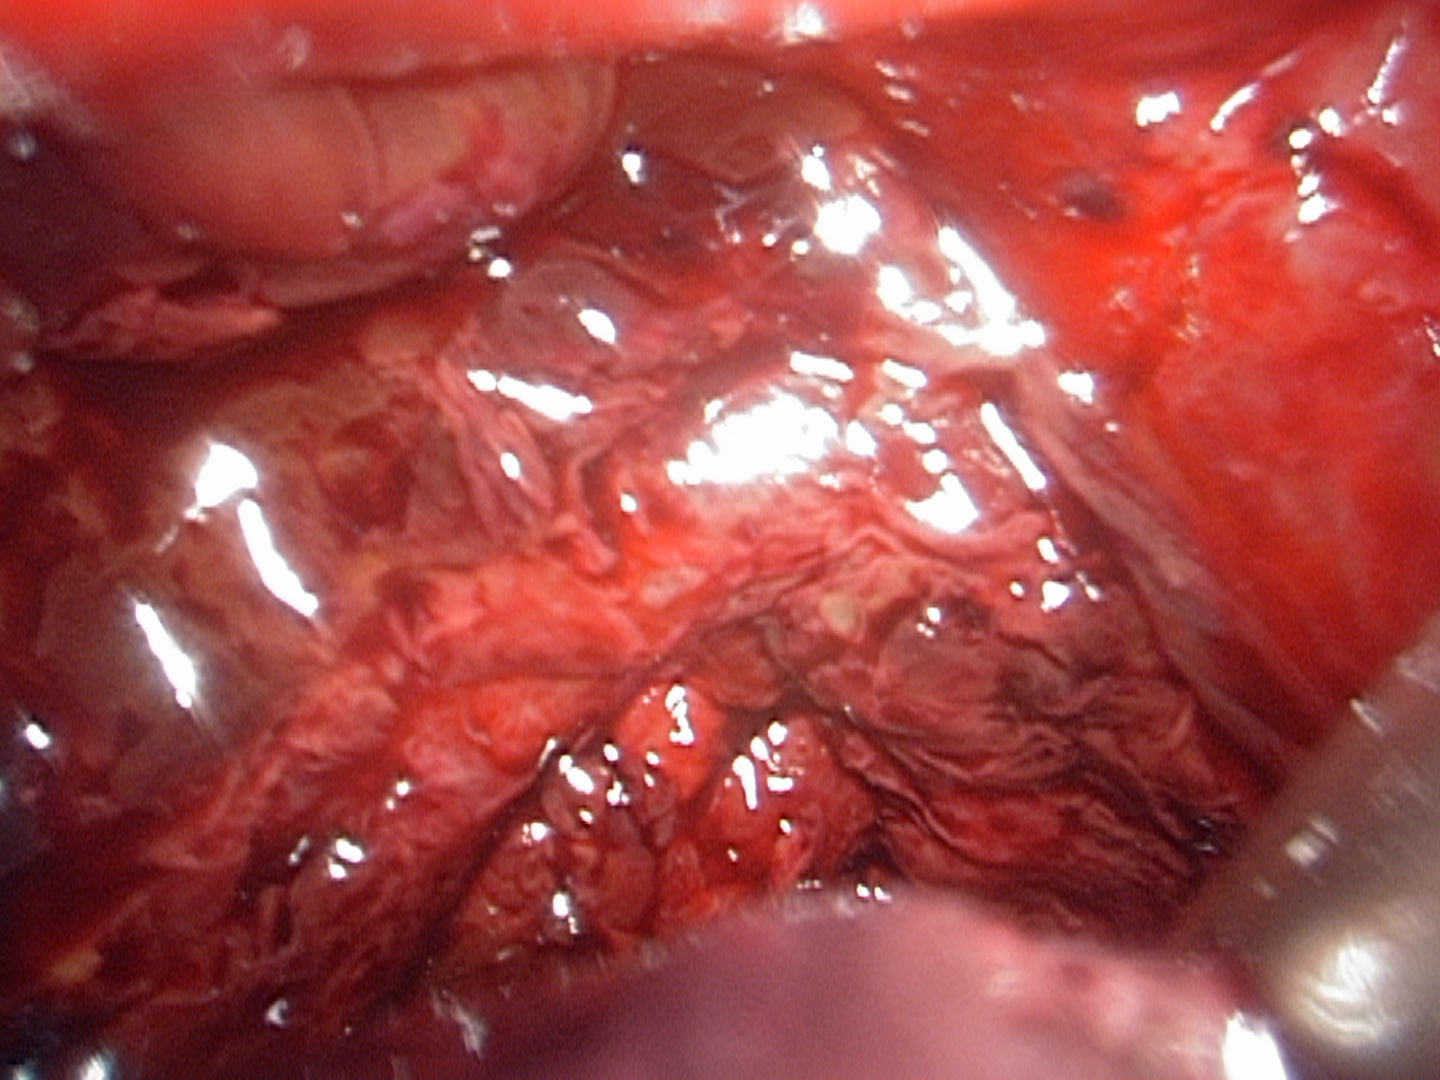 endometriosis - photo #1